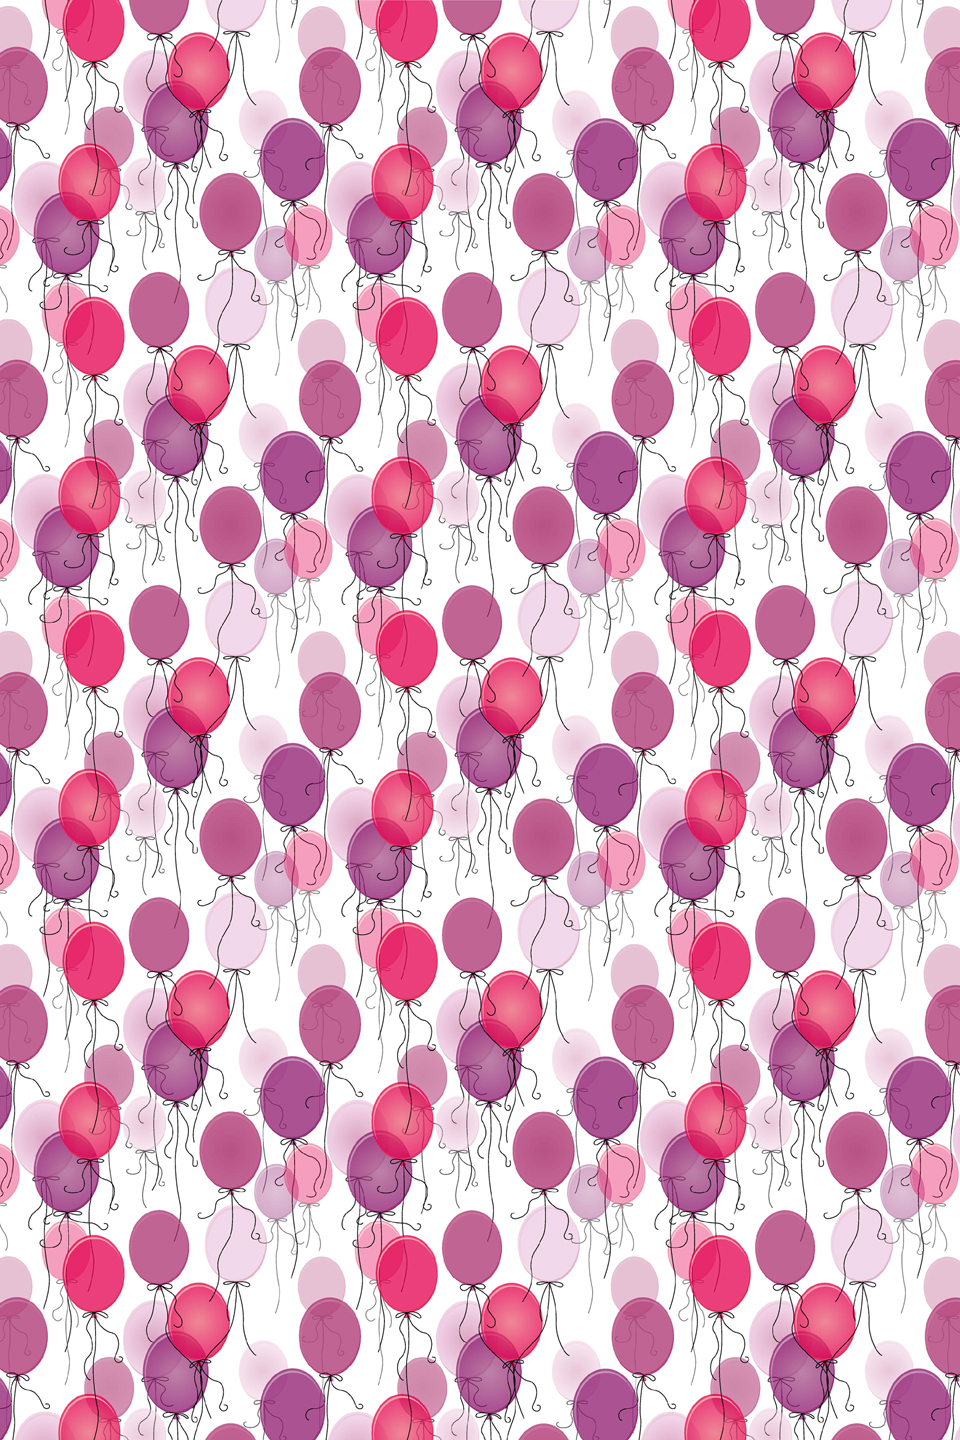 Pink balloons blind fabric